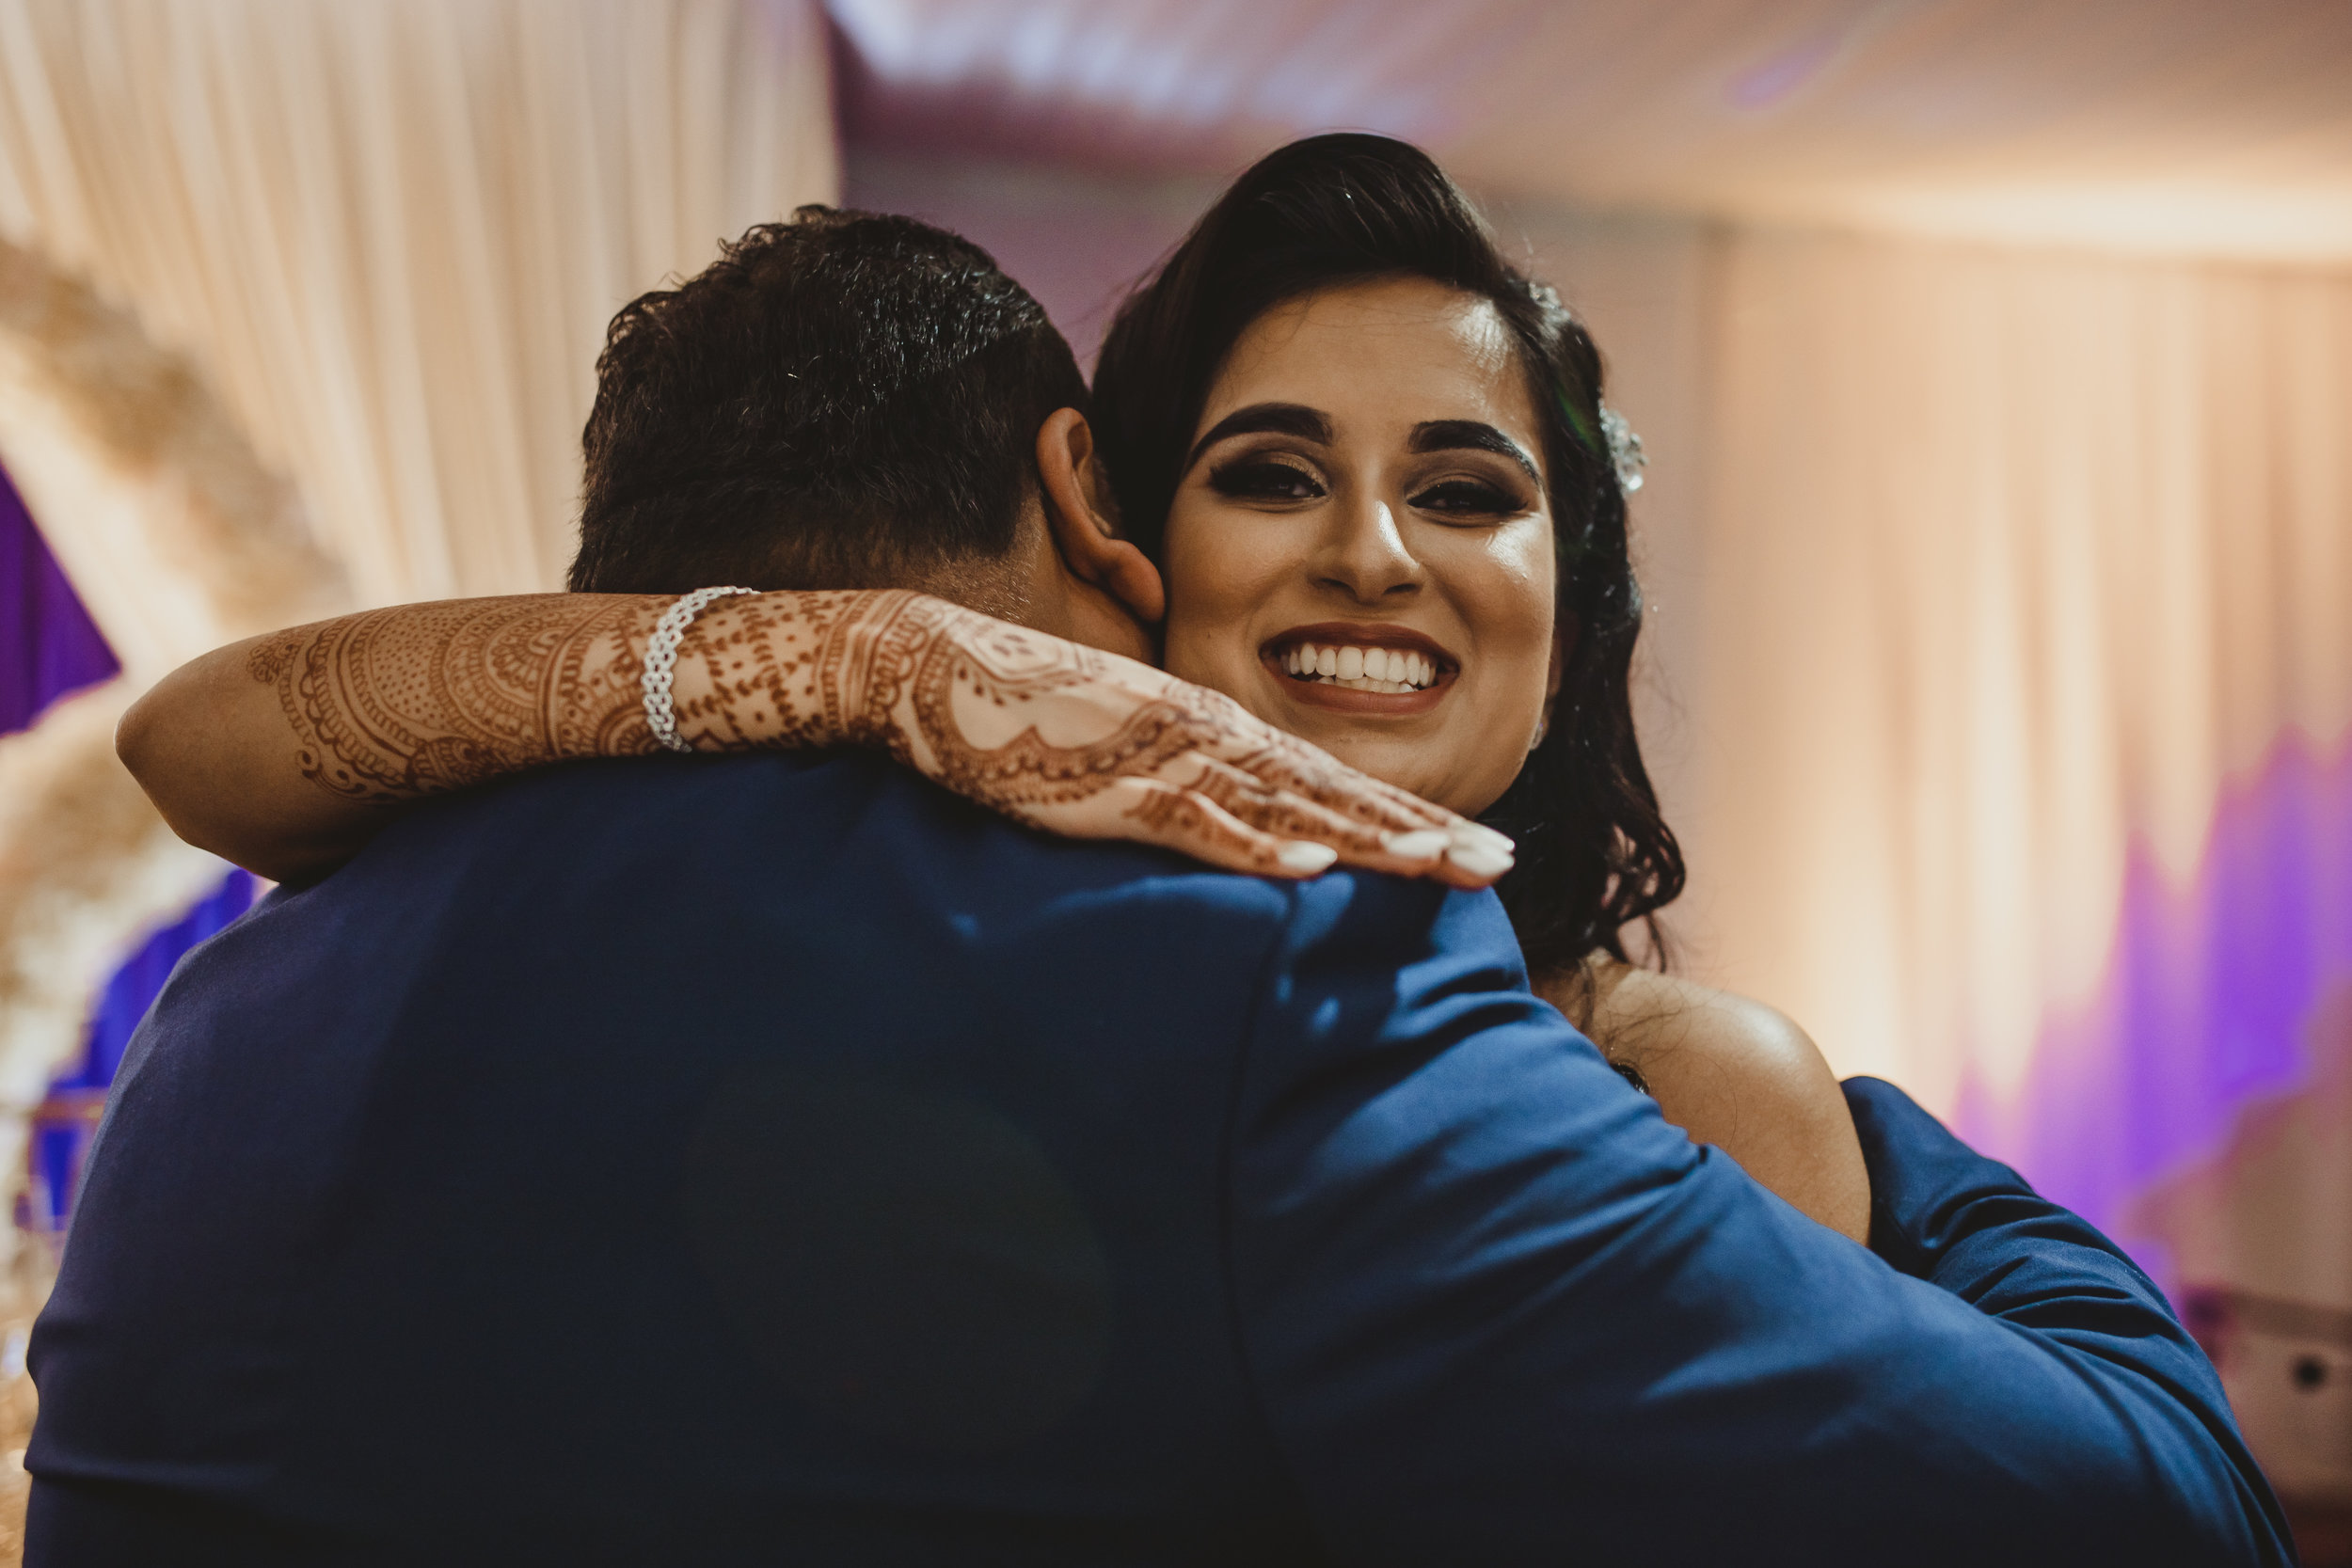 N&J_MILTON_KEYNES_WEDDING_LONDON_PHOTOGRAPHER_ASIAN_WEDDING-1049.JPG